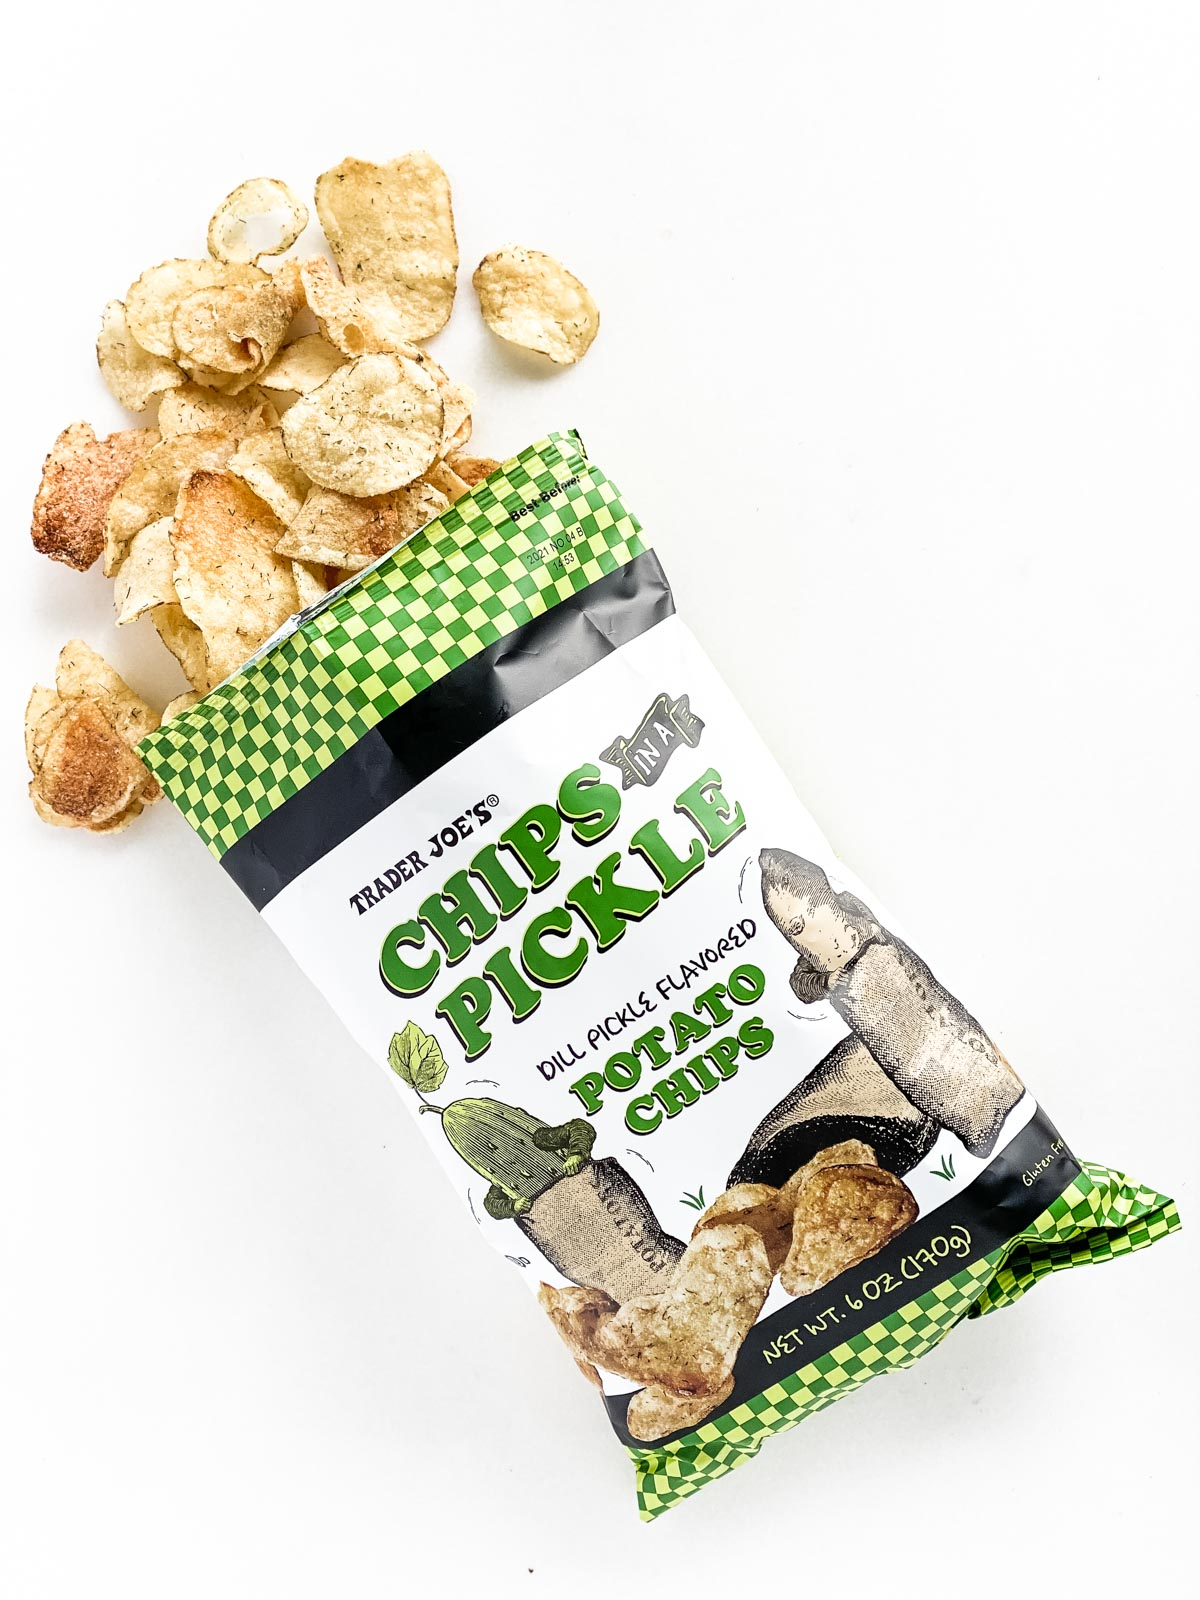 dill pickle chips from Trader Joe's